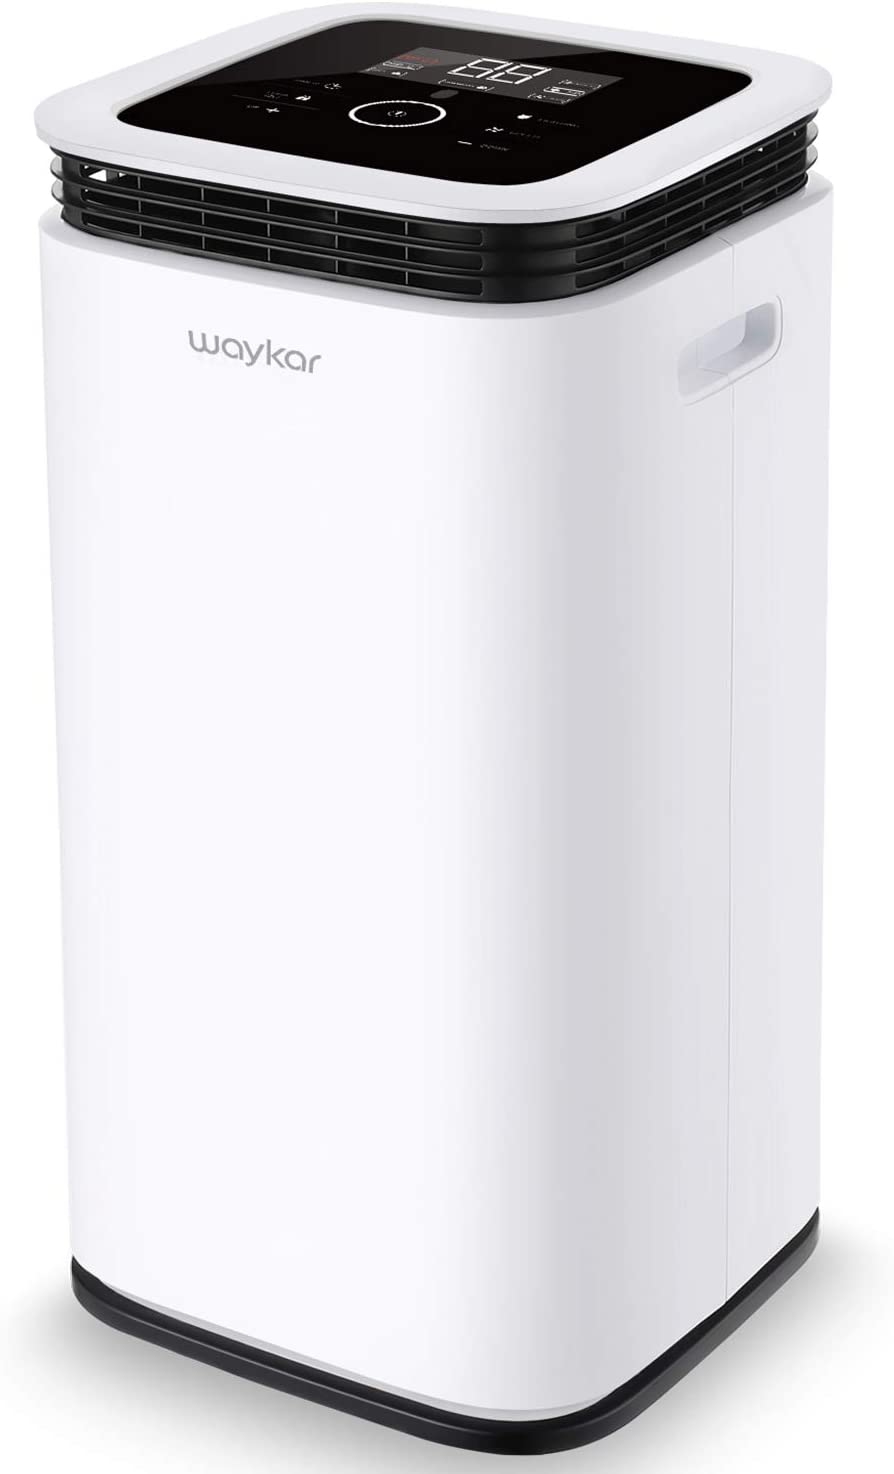 Waykar 70 Pint Dehumidifier for Home Basements Bedroom Garage, 9 Gallons/Day Working Capacity, Four Air Outlets, with 1.18 Gallon Water Tank, Continuous Drain Hose and Wheel Spaces up to 4500 Sq Ft